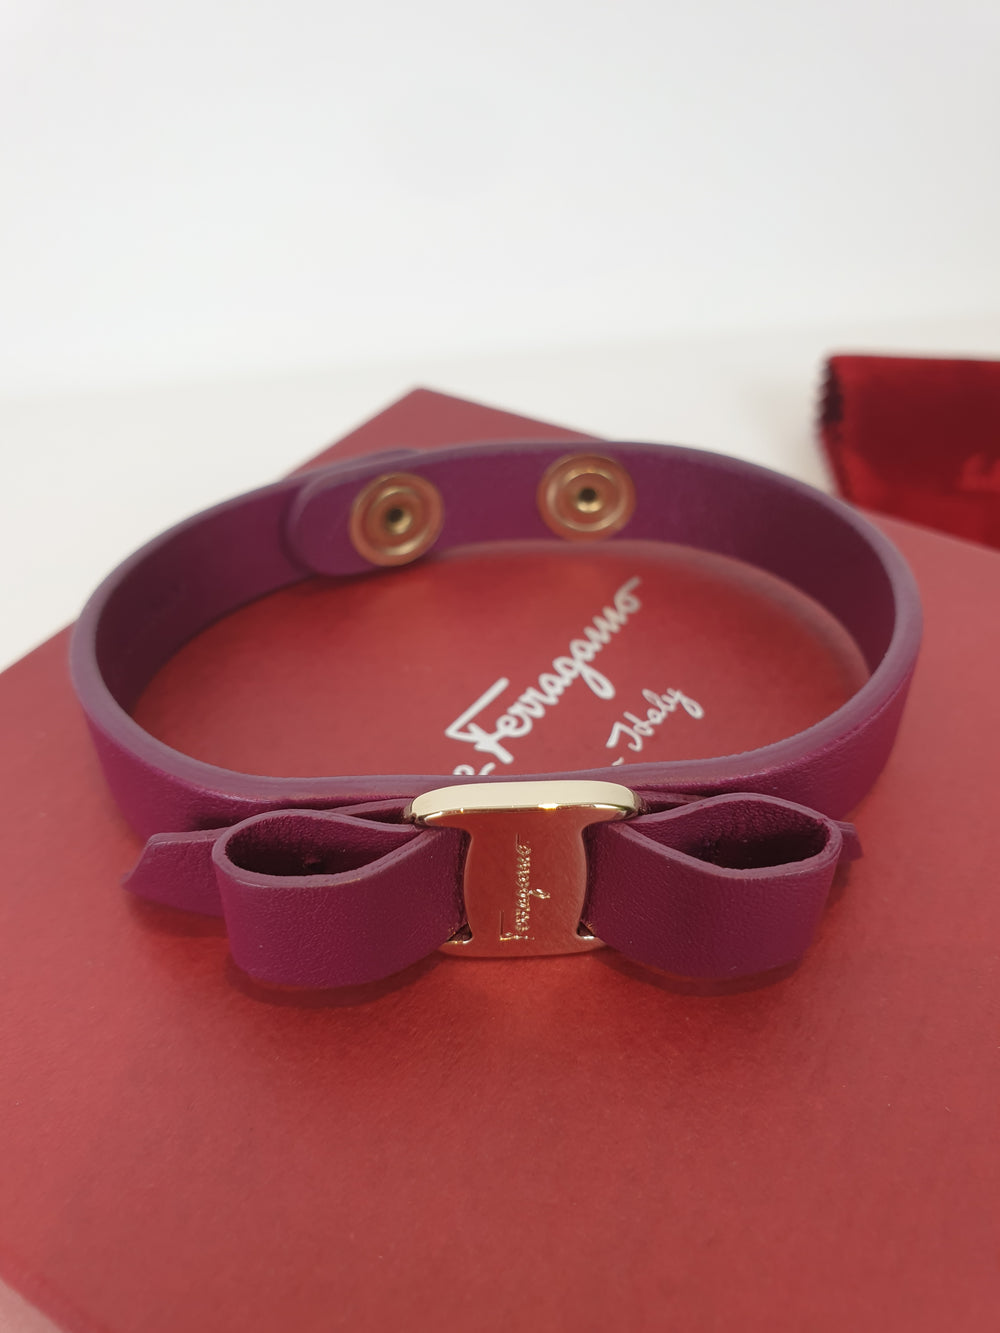 Salvatore Ferragamo Purple Bracelet - As seen on Instagram 5/08/20 - Siopaella Designer Exchange